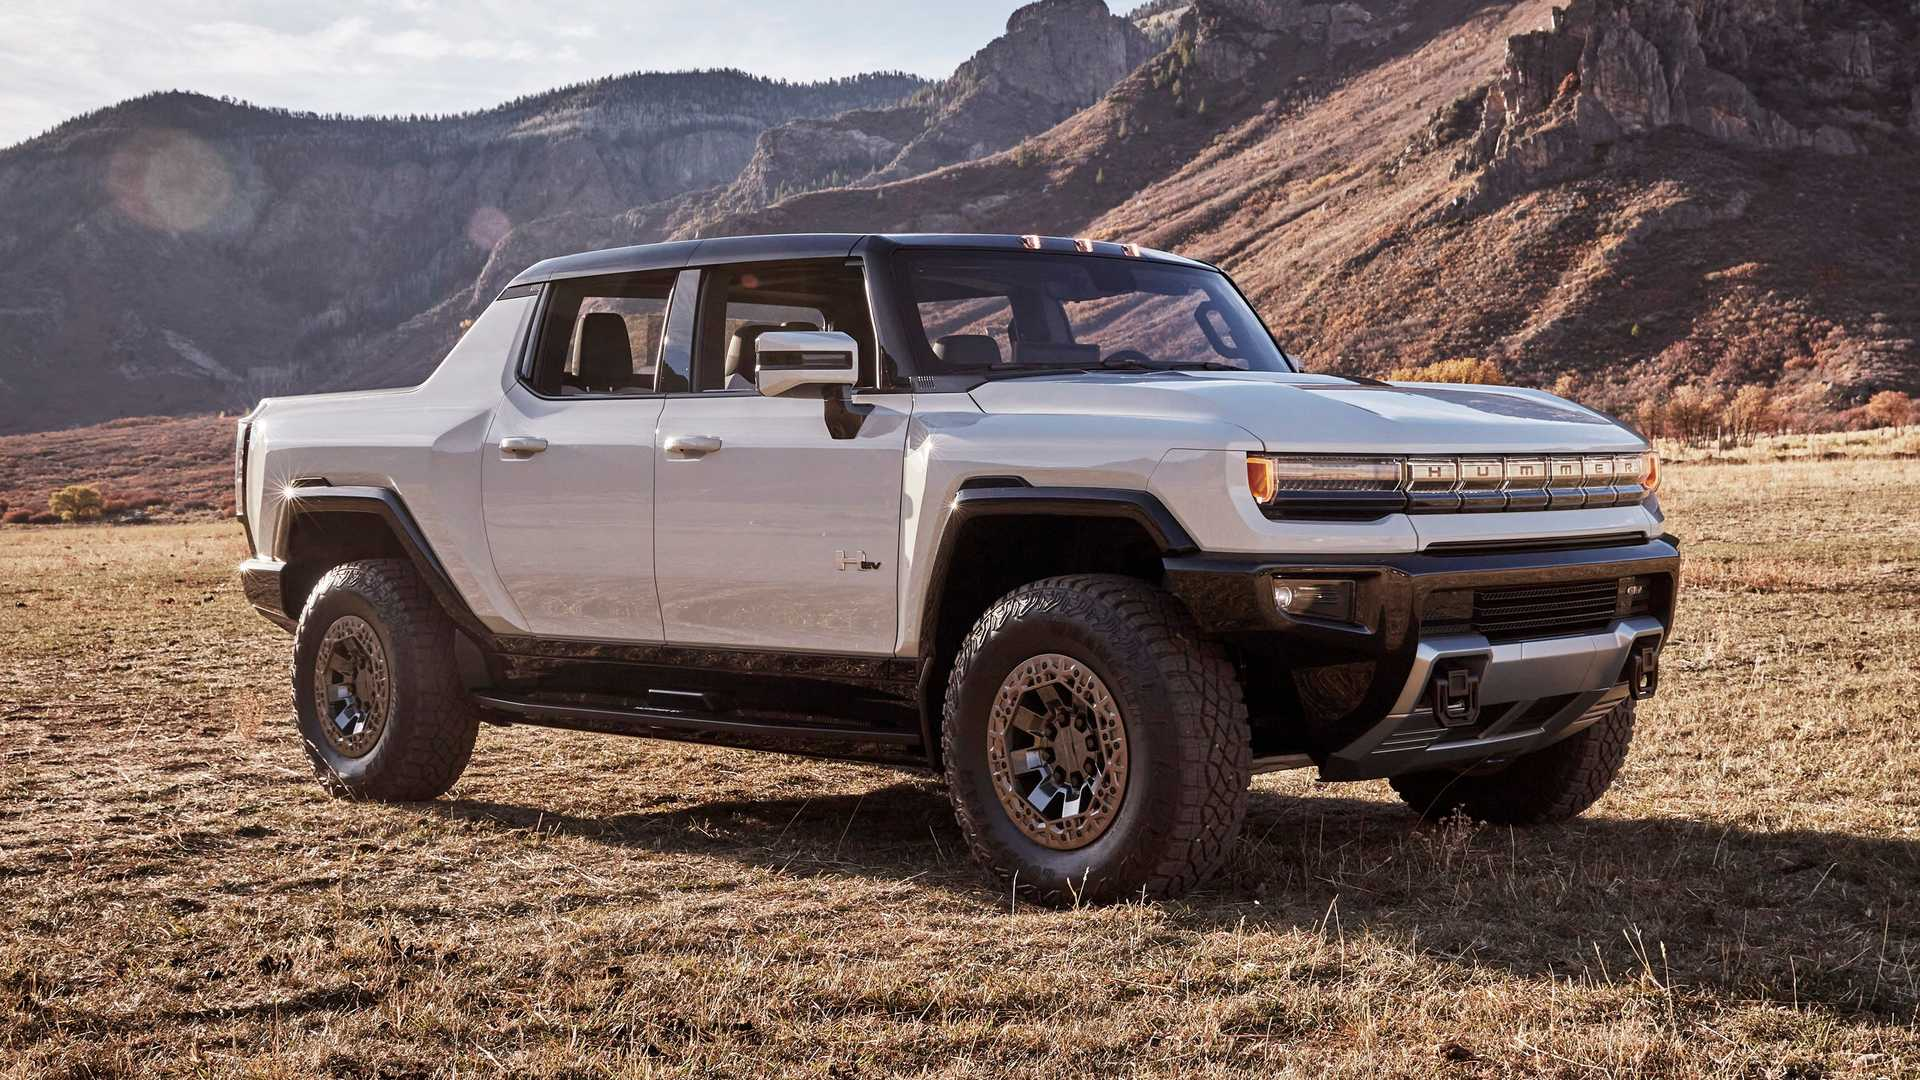 Only About Half Of GMC Dealerships Have Agreed To Sell Hummer EV